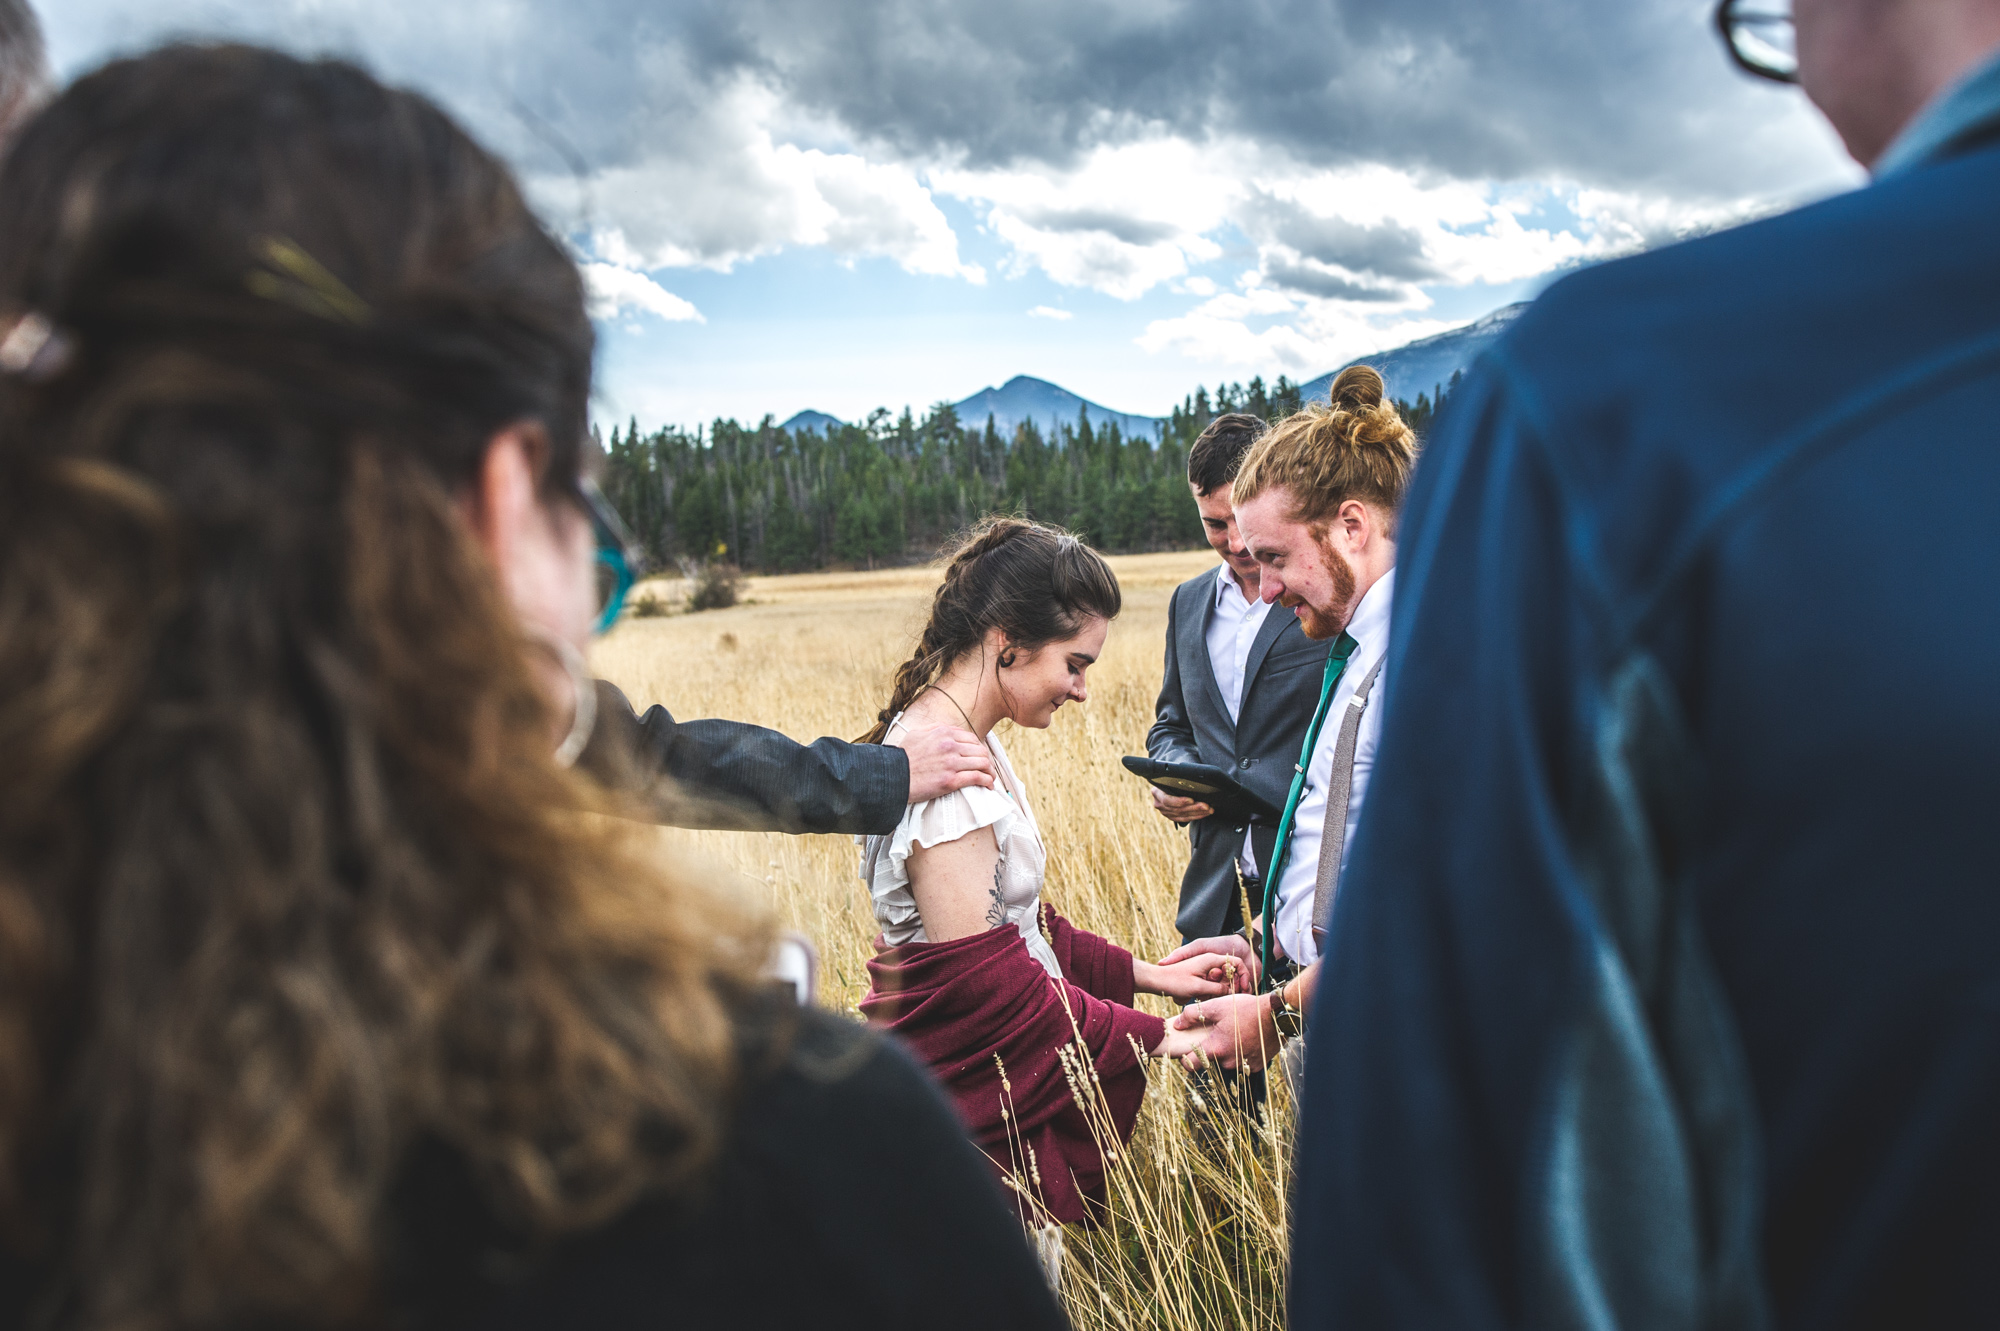 Estes-park-wedding-photography-outdoor-ceremony.jpg